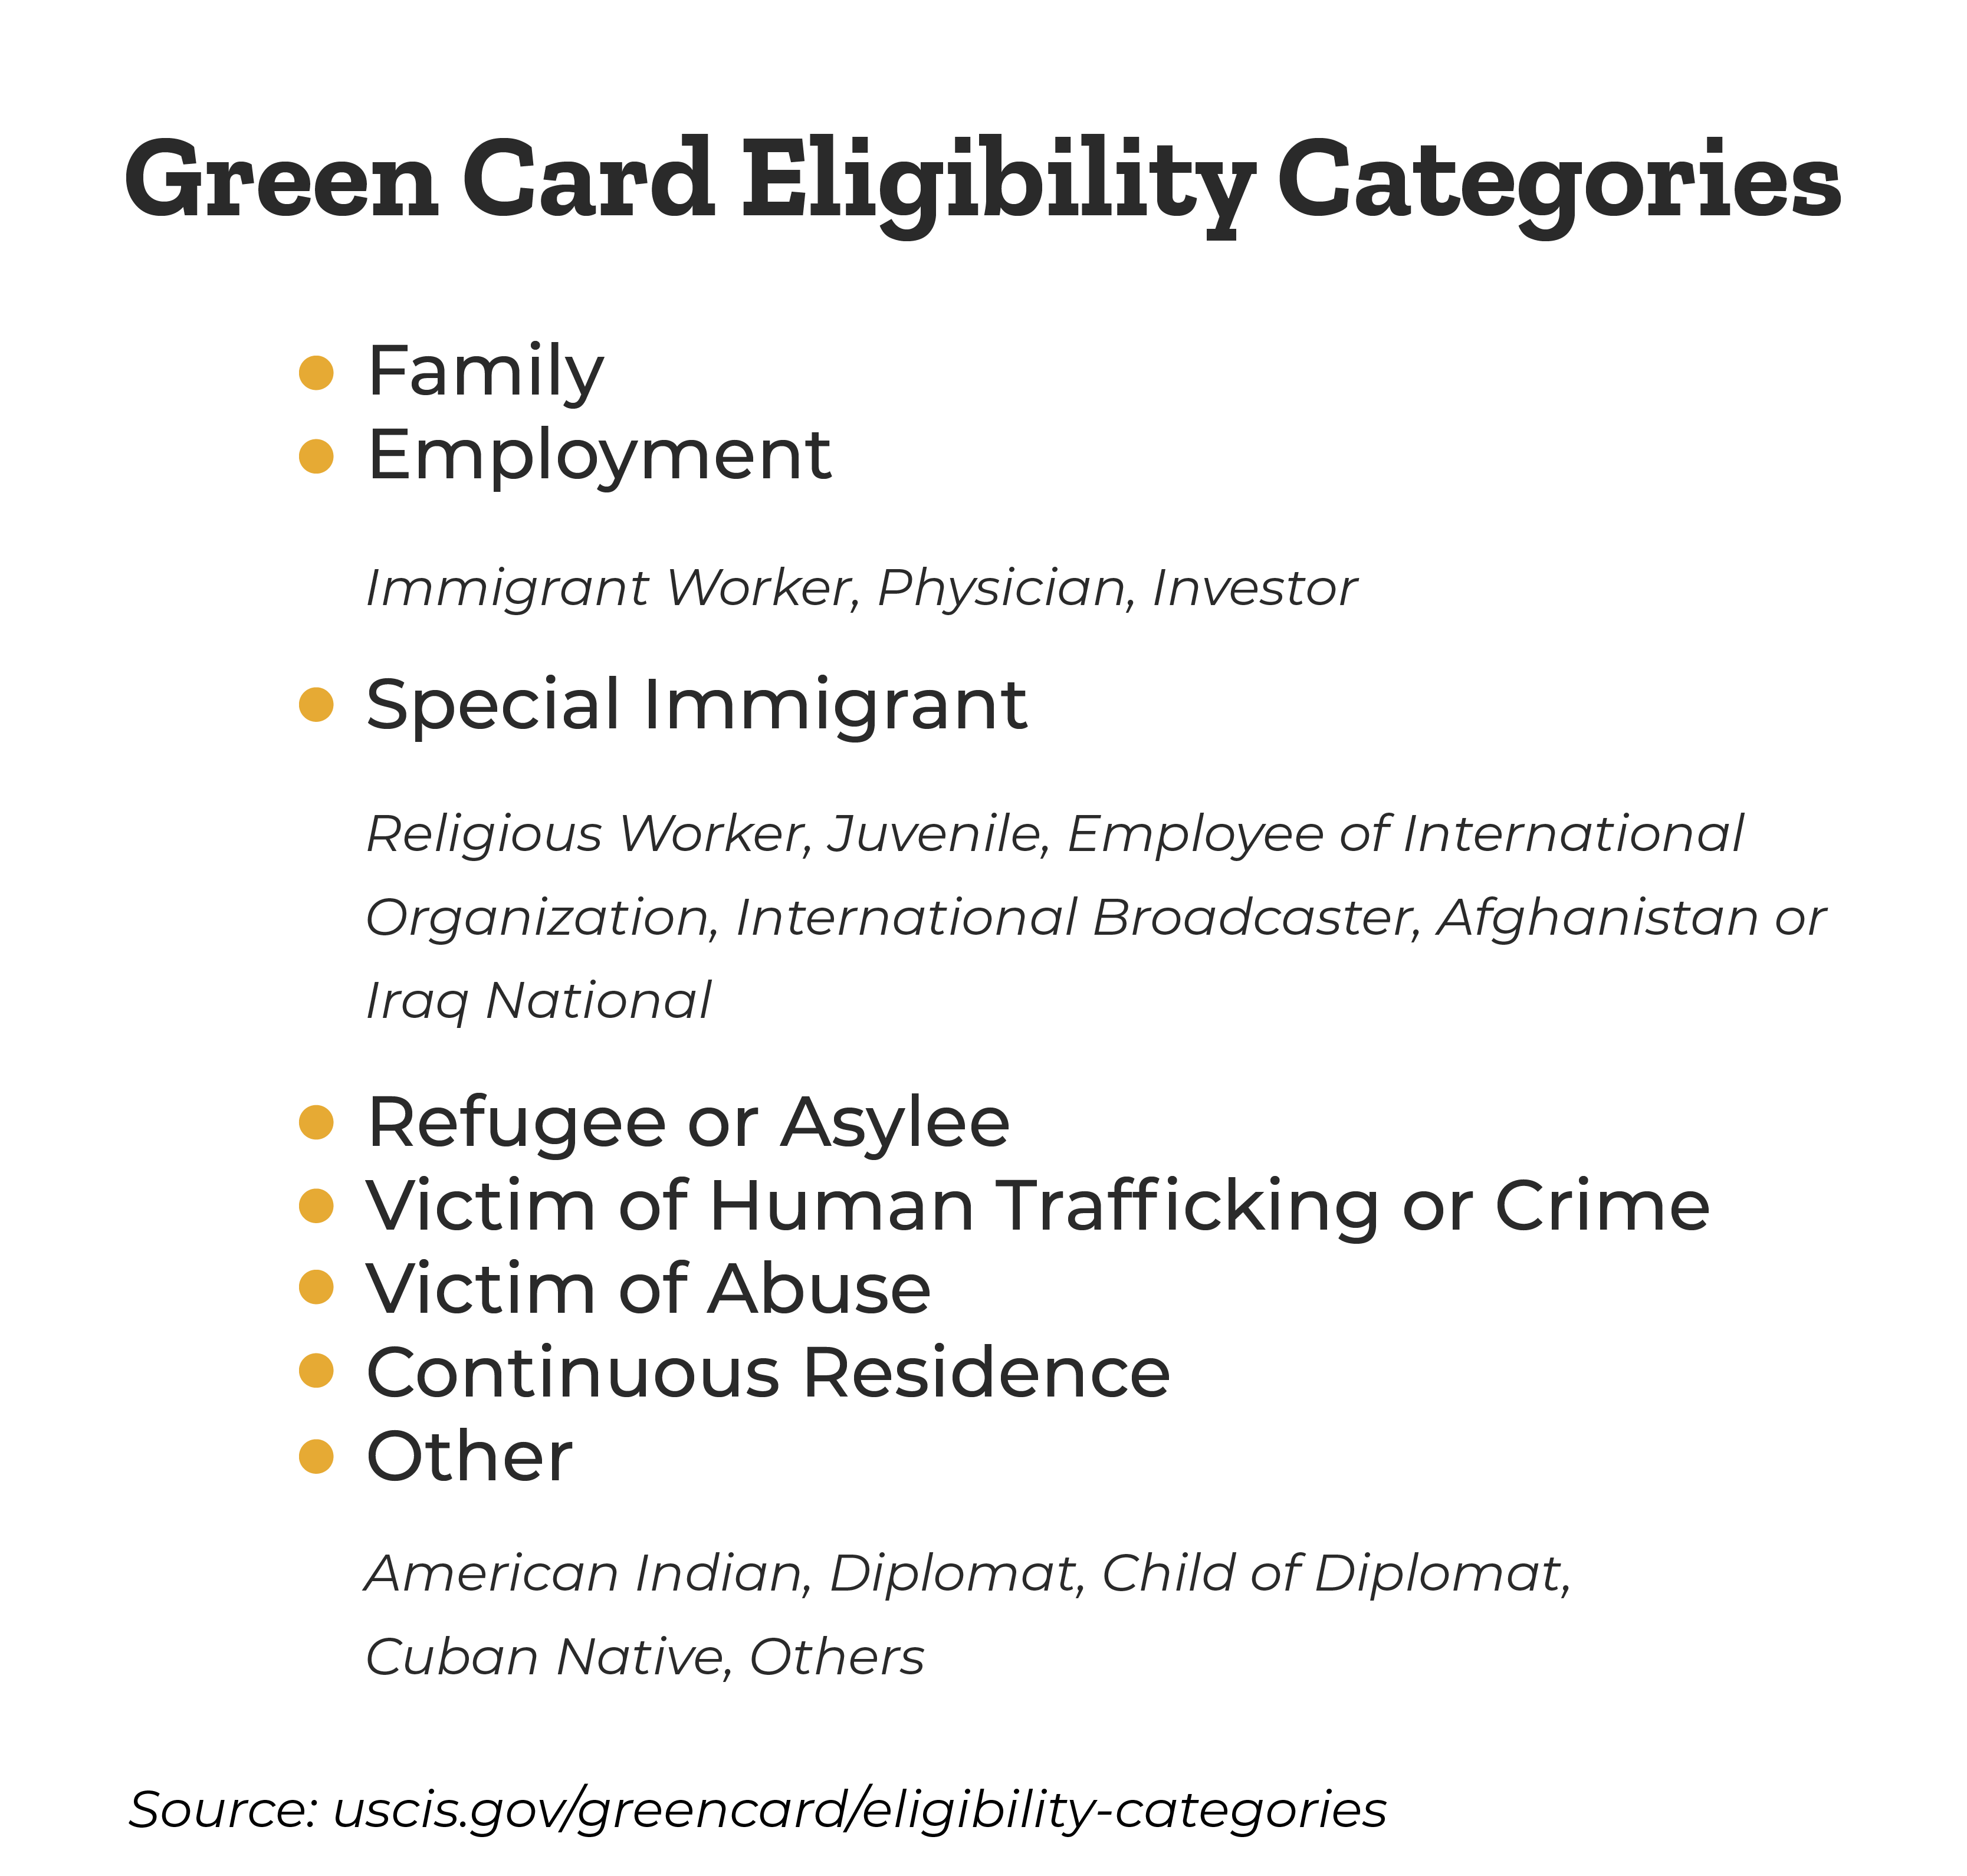 Green Card Eligibility Categories -  Family, Employment, Special Immigration, Refugee or Asylee, Victim of Human Trafficking or Crime, Victim of Abuse, Continuous Residence, Other